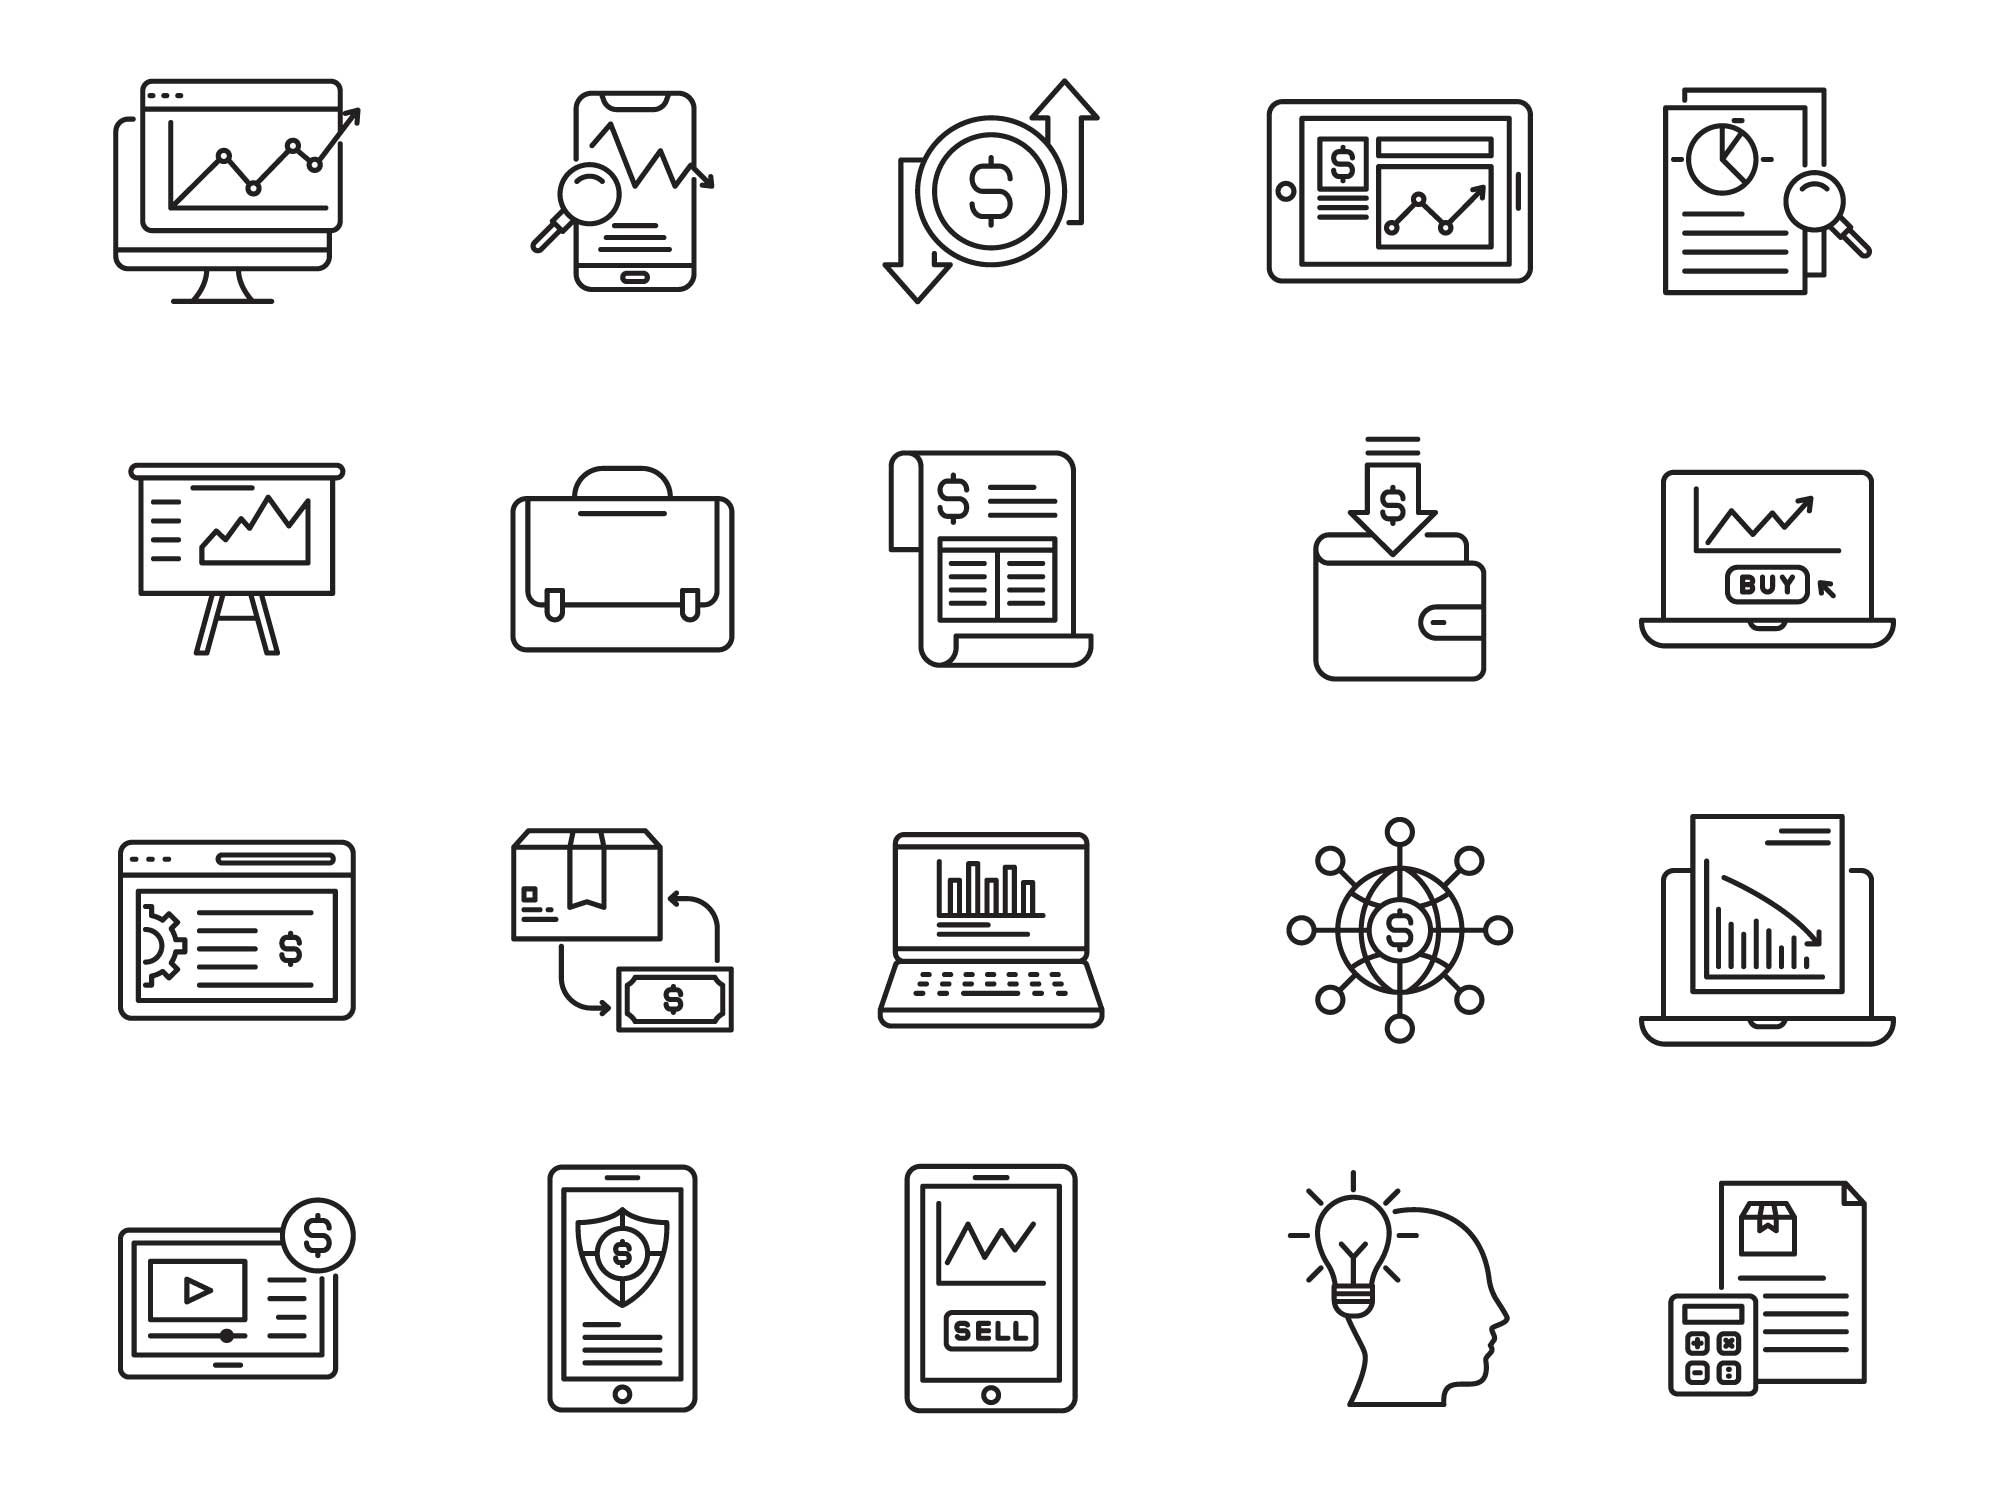 Trade Vector Icons Part 03